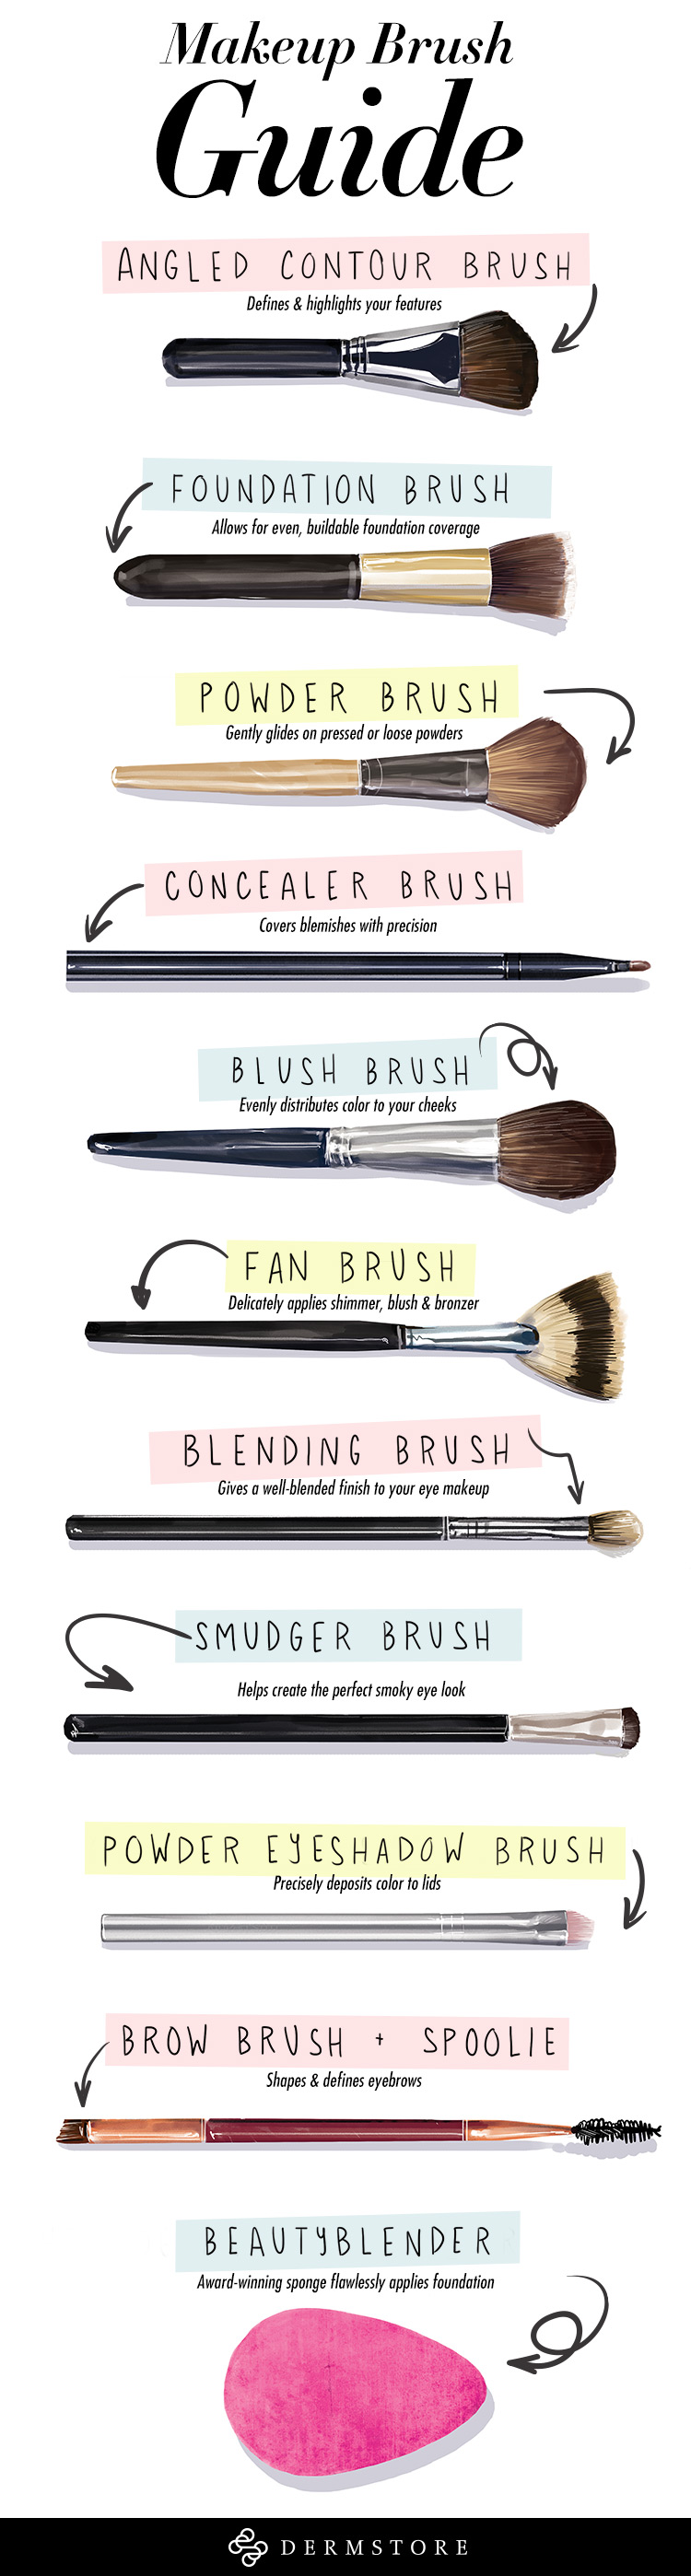 makeup brush guide infographic